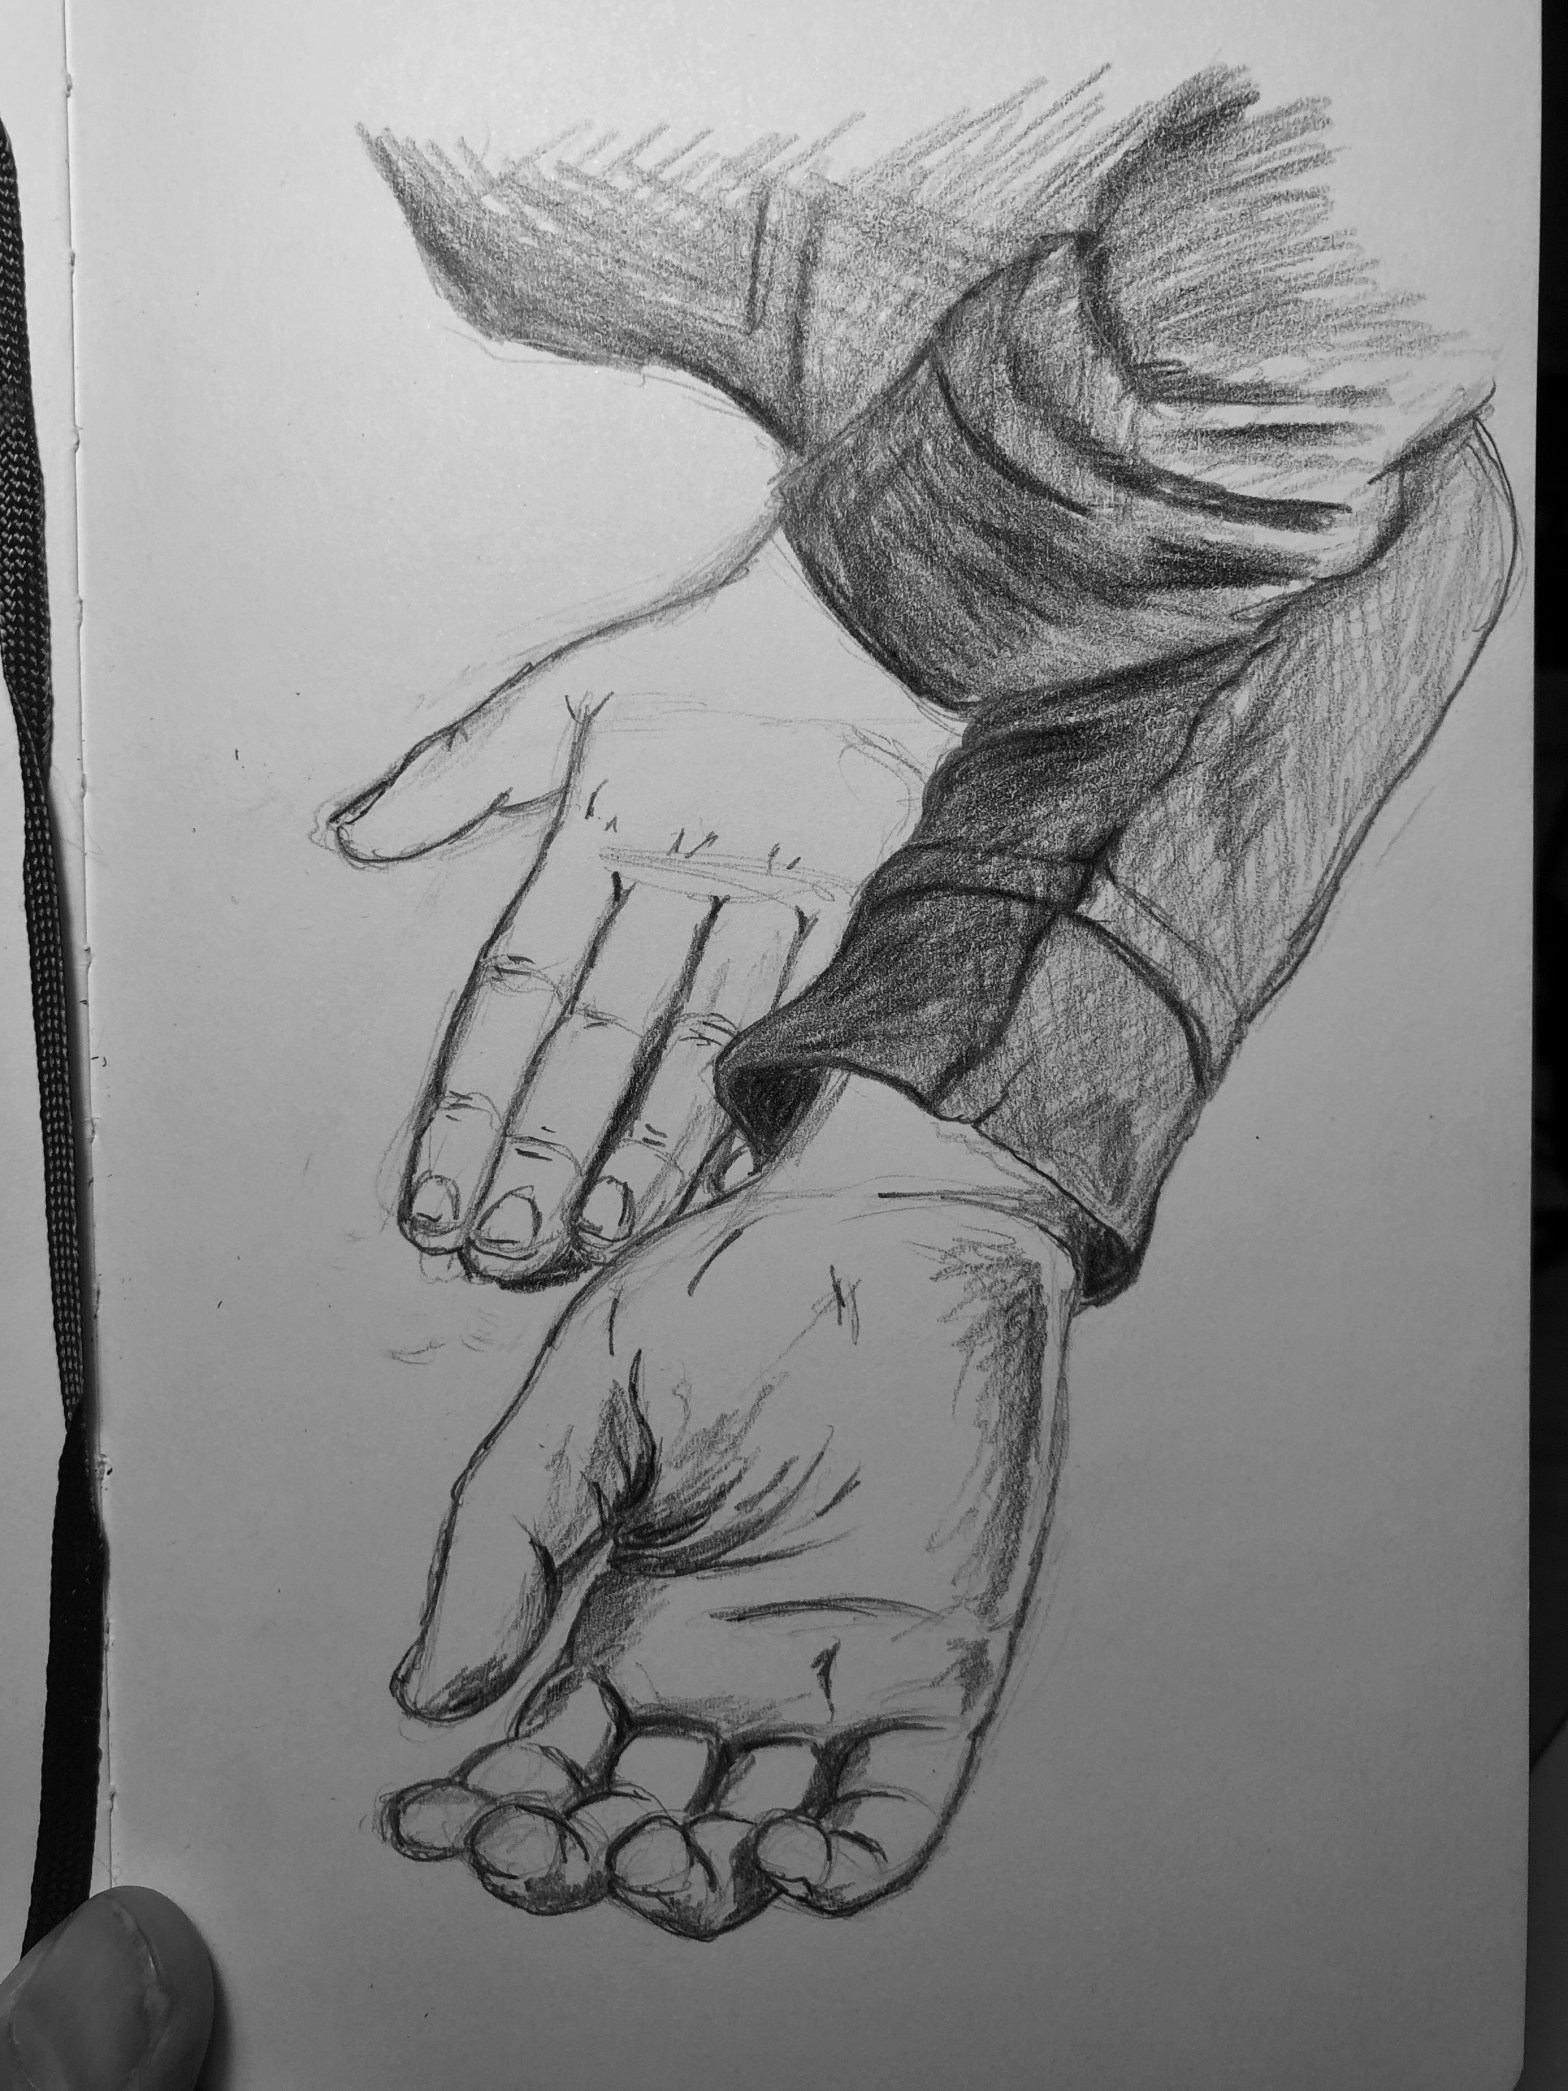 Sketch of two hands, one lying face up and the other face down.